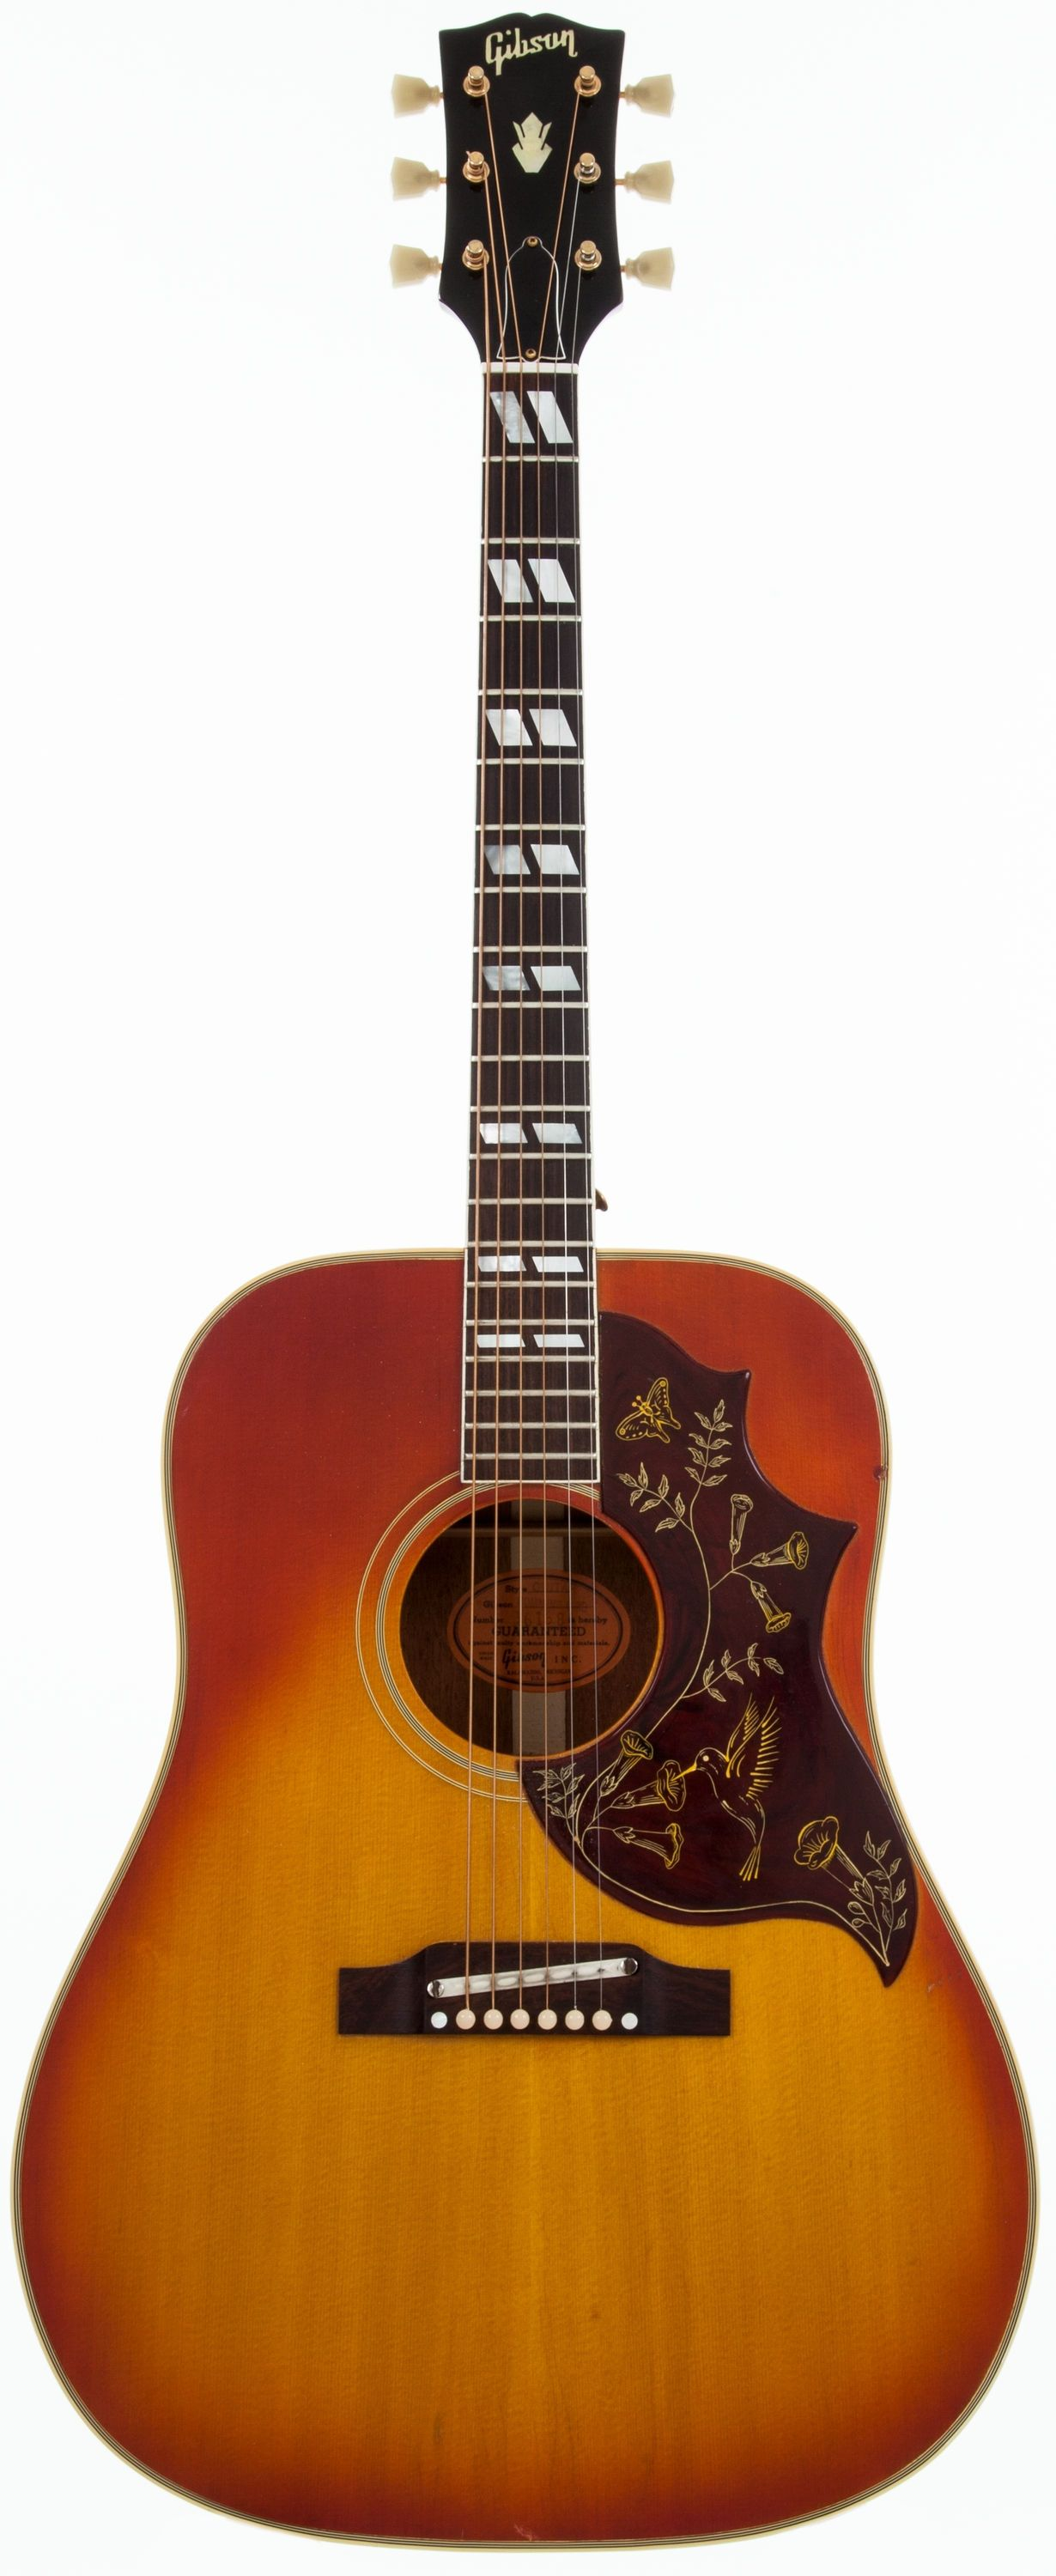 1965 gibson hummingbird sunburst acoustic guitar 361684 lot 51016 heritage auctions. Black Bedroom Furniture Sets. Home Design Ideas